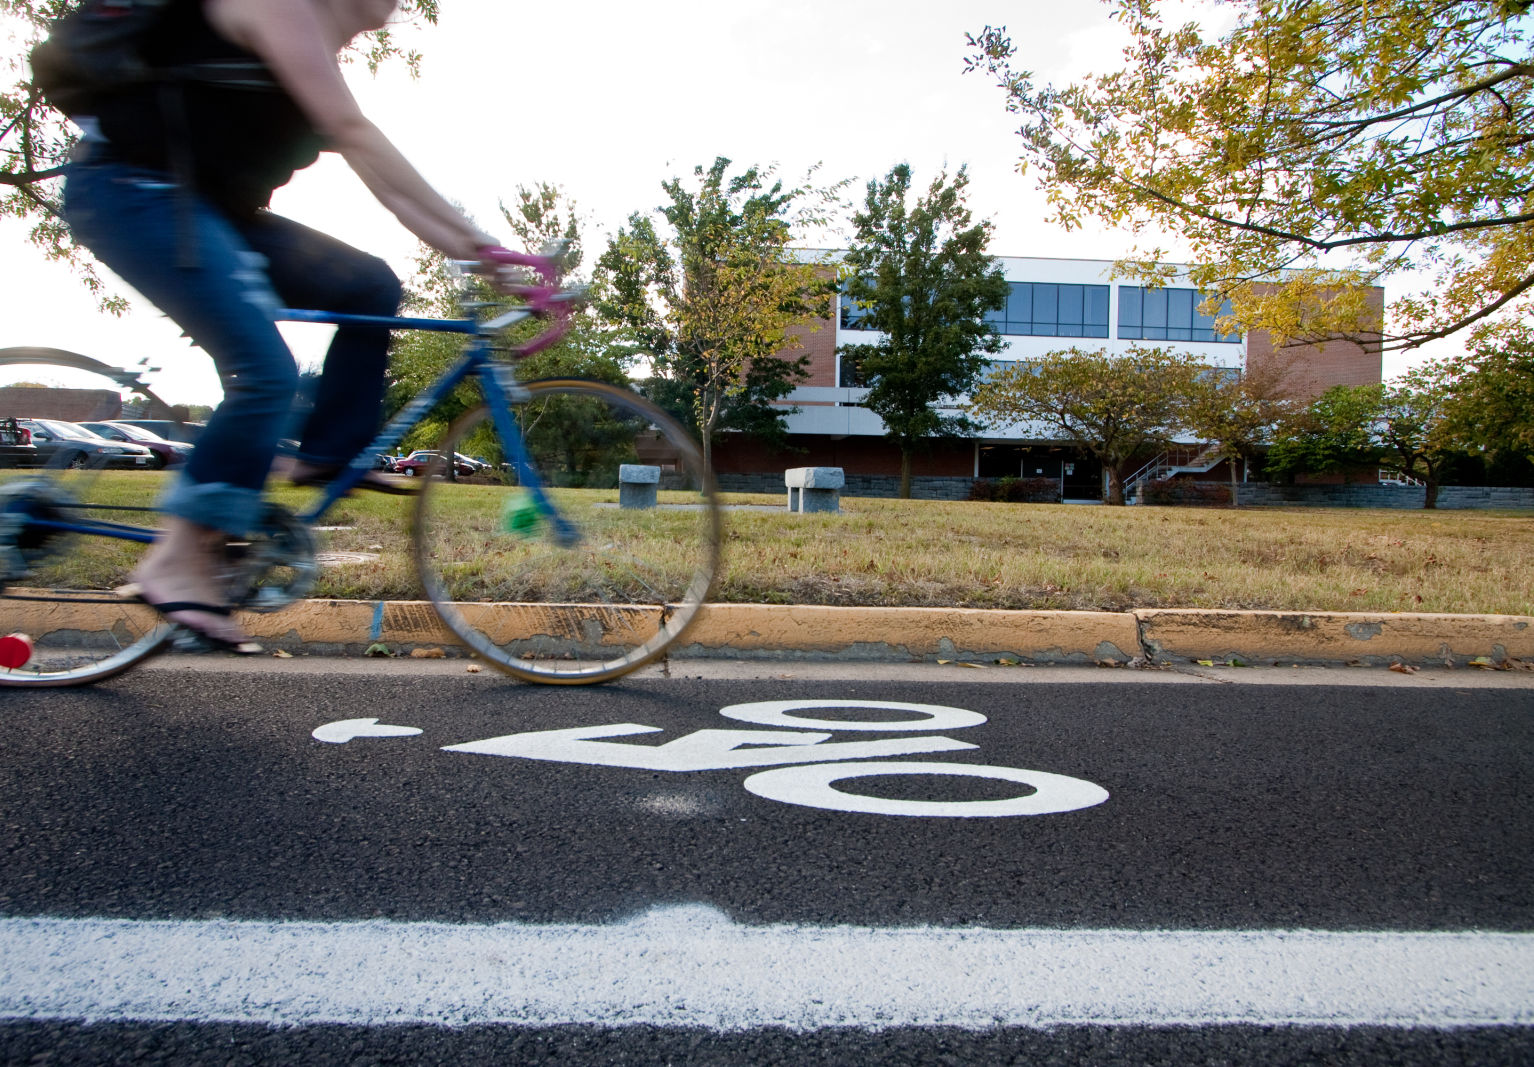 Bicycle lane on eastern mennonite university campus sccs23